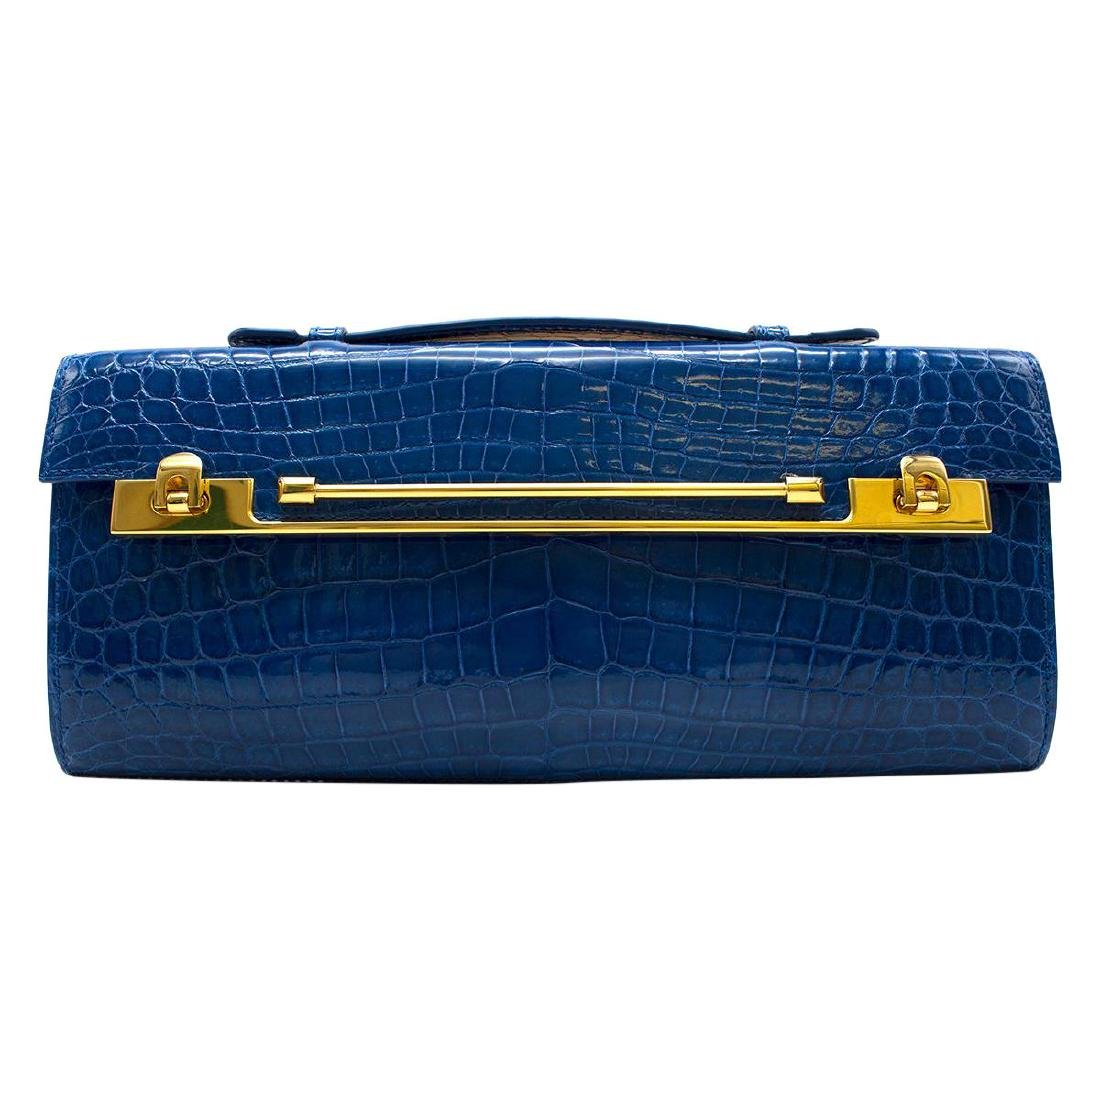 Kwanpen Tanzanite Raffles 1819 Clutch - Current Season